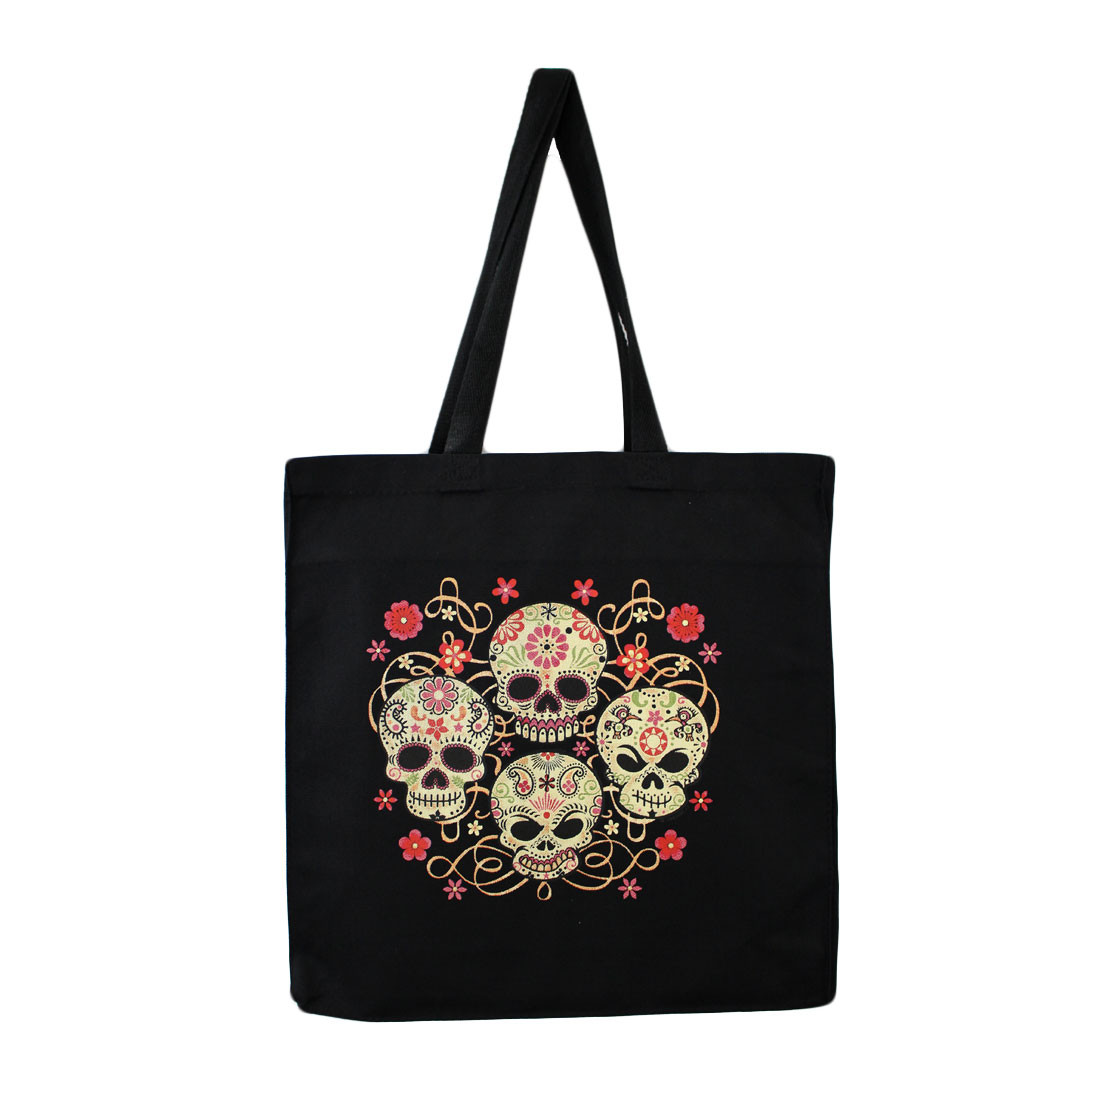 Skulls and Flowers Tote Bag